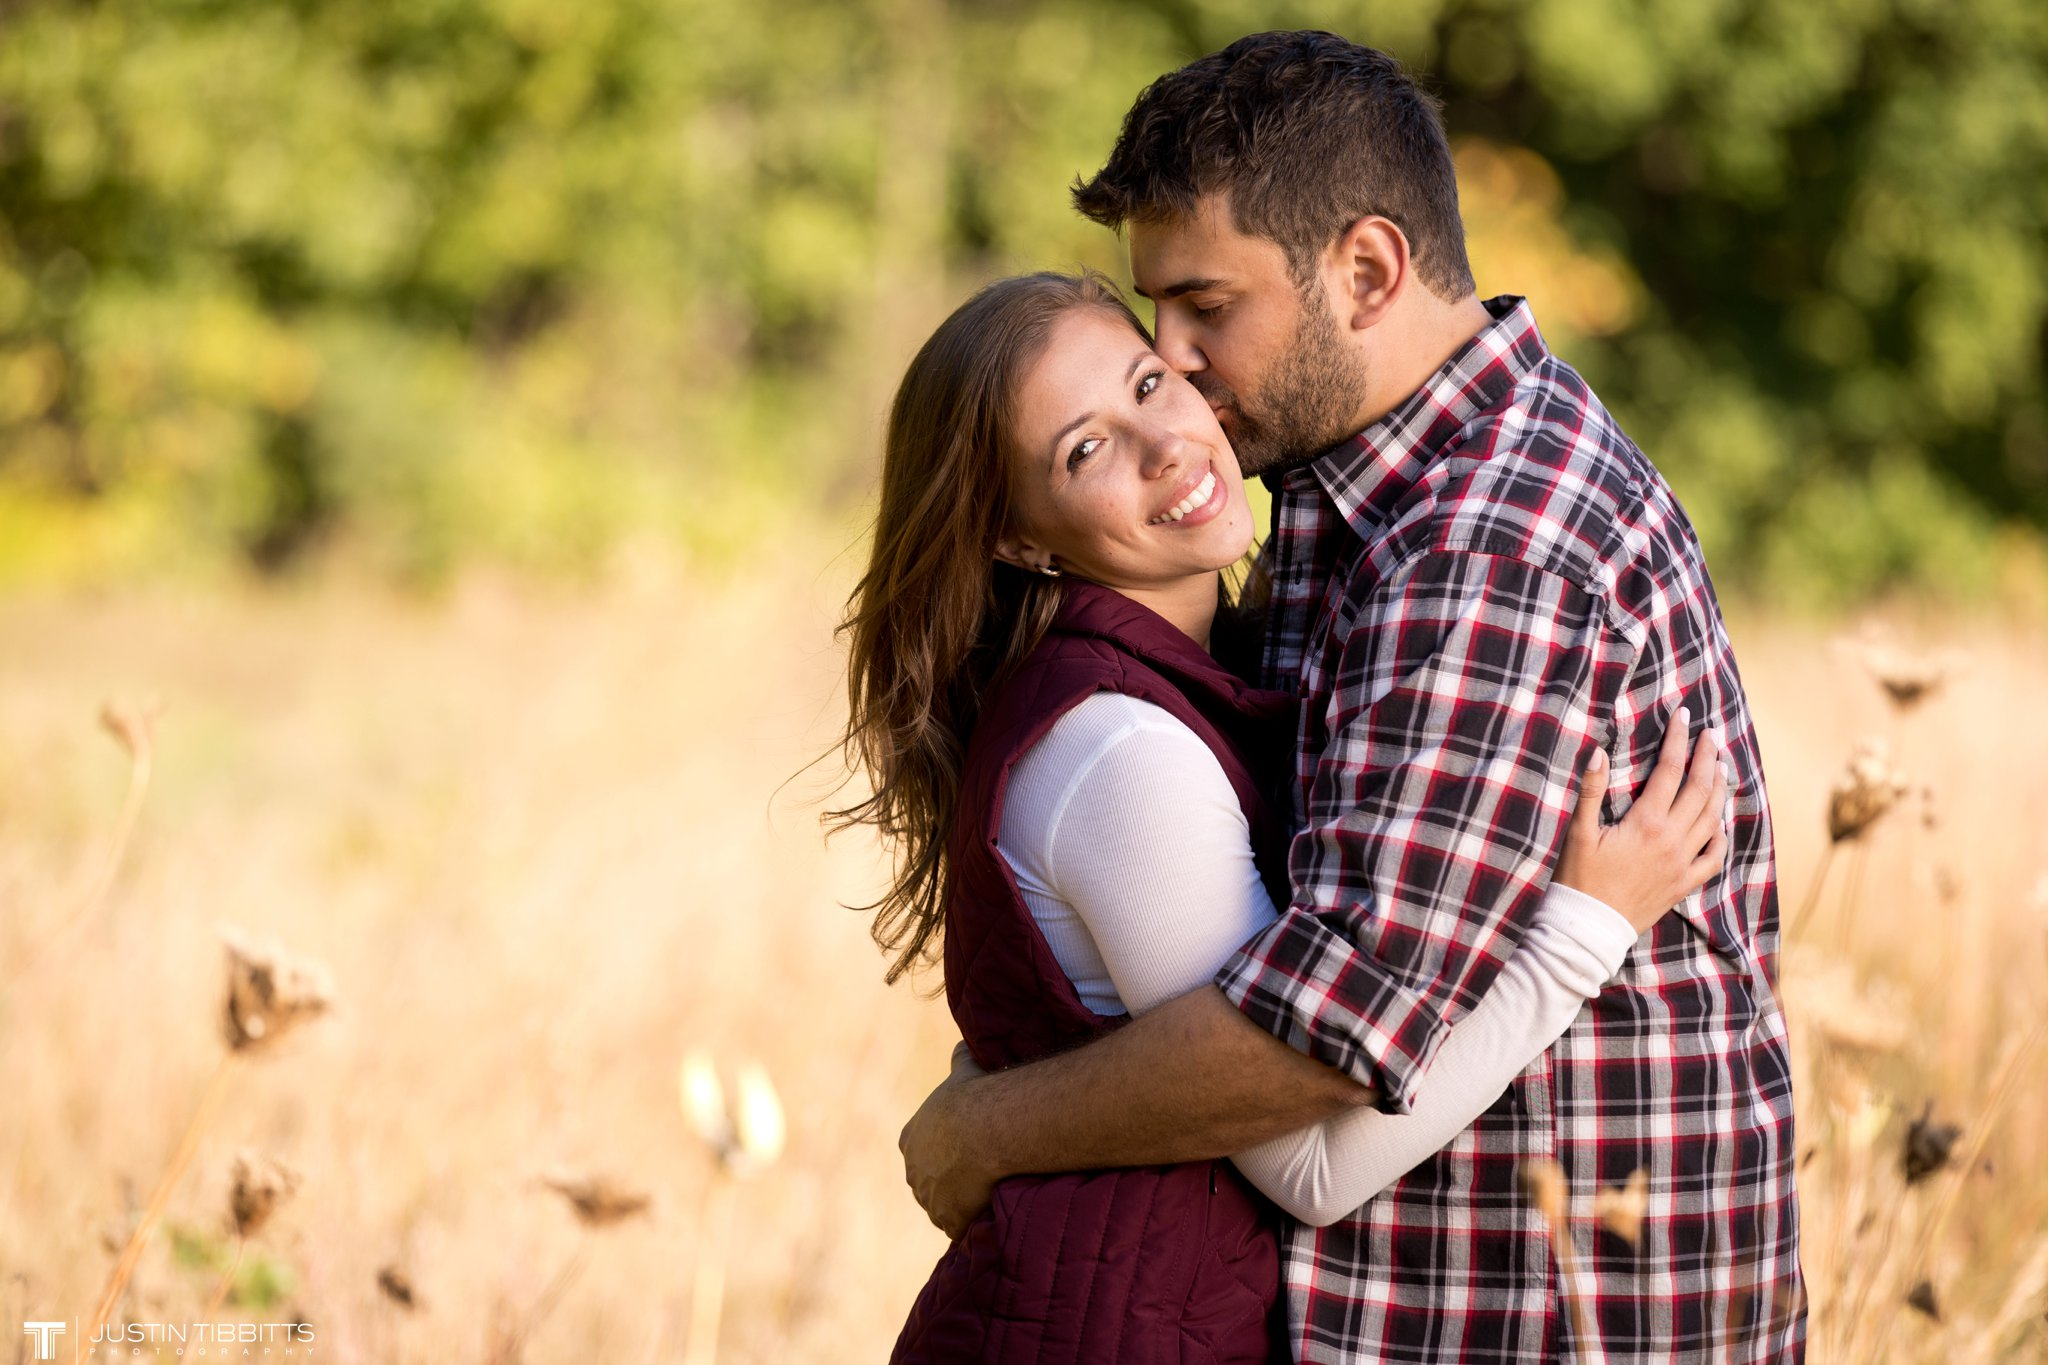 saratoga-springs-ny-engagement-shoot-with-nick-and-ciara_0015